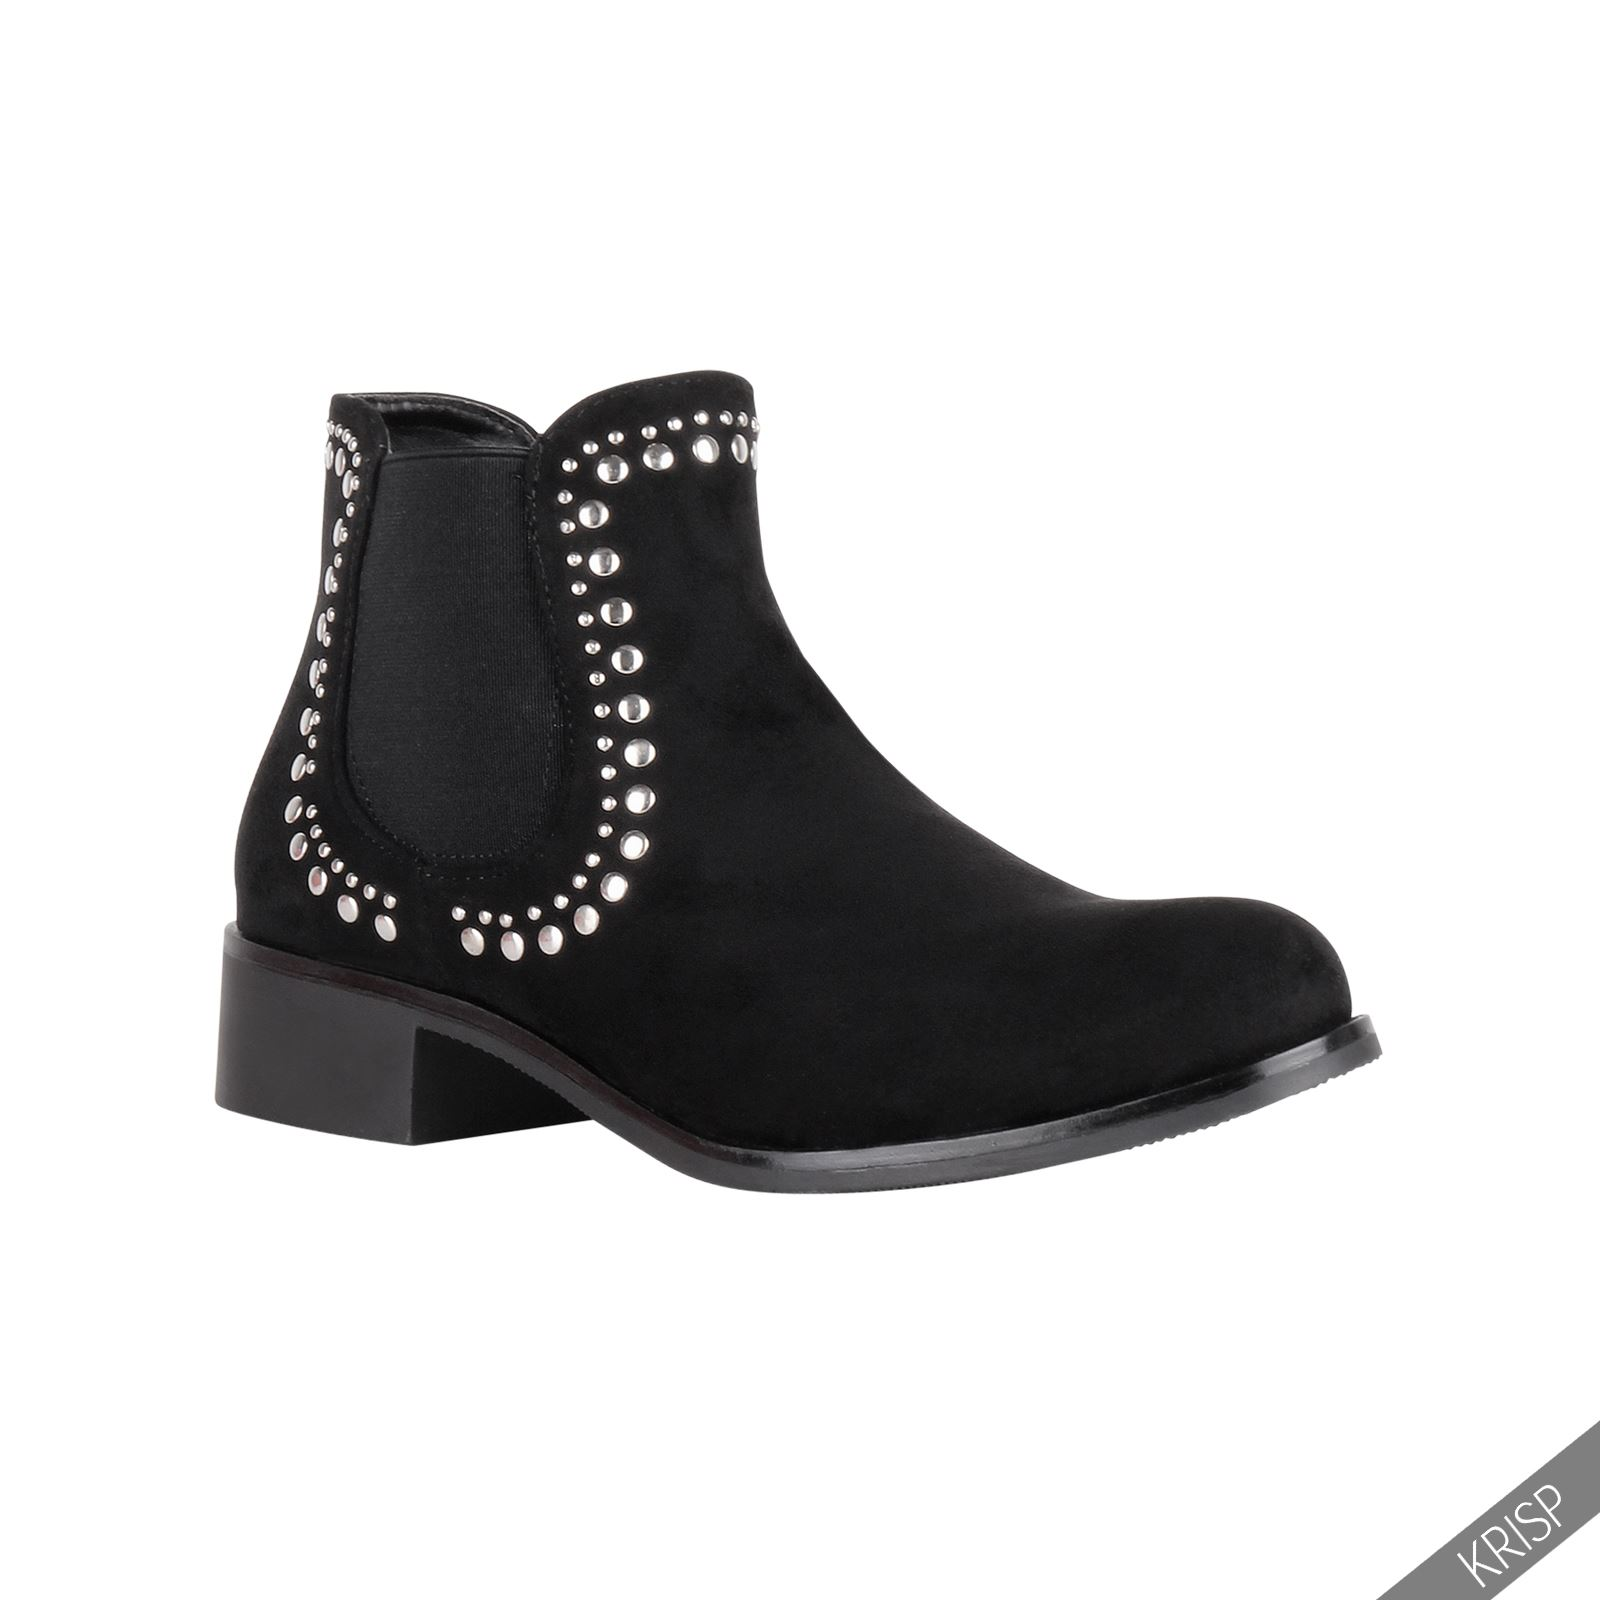 Black ankle chelsea boot Black ankle chelsea boot £ Product no: Size guide Only a few left in stock Black chunky side zip block heel ankle boots. Quick view. Add to wishlist. £ Brown star print block heel ankle boots. Quick view. Add to wishlist. £ Black square toe wide fit ankle boots.